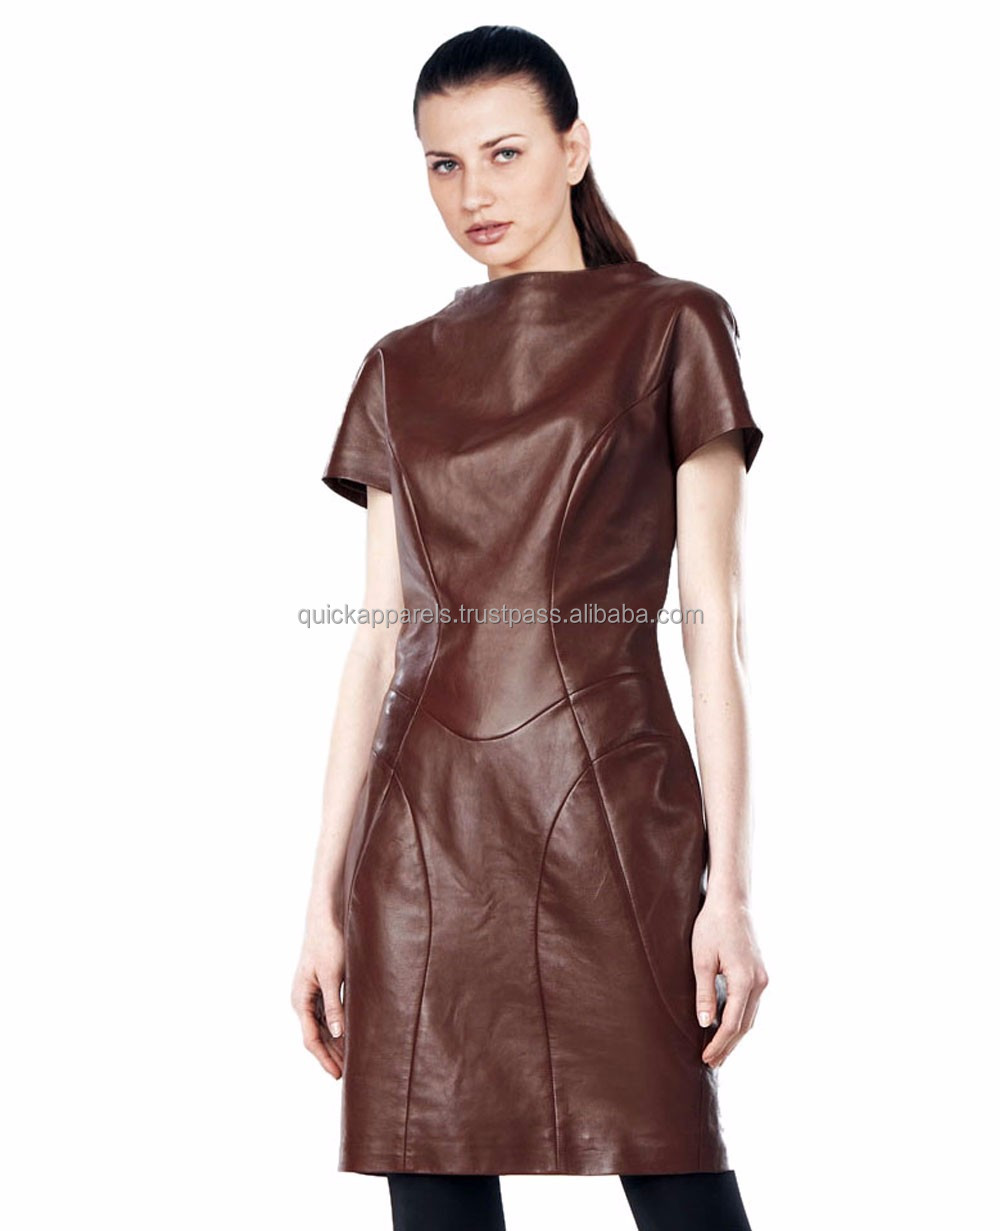 Fashion western design lady dress woman short sleeve tight fashion PU leather dress